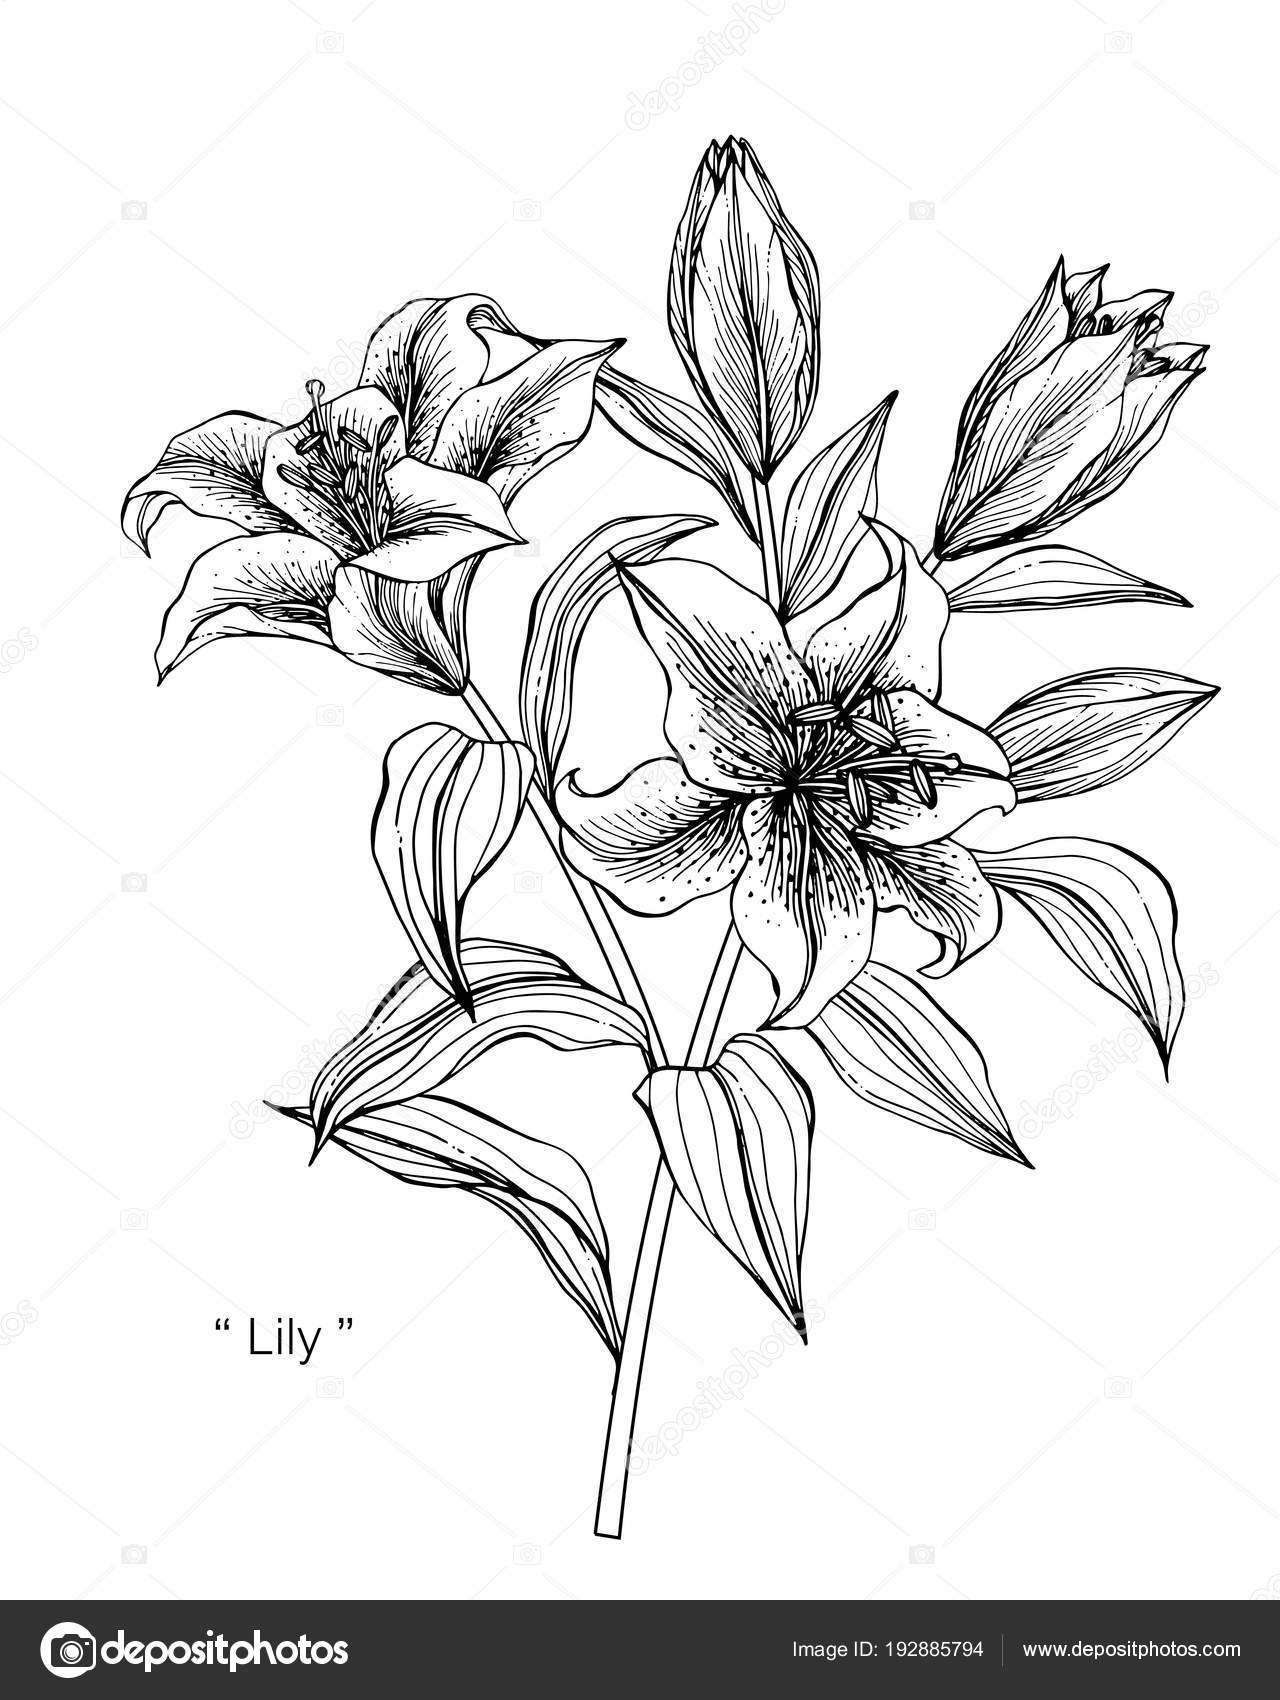 lily flower drawing pin by janelle elena on ink lilies drawing lily flower drawing flower lily